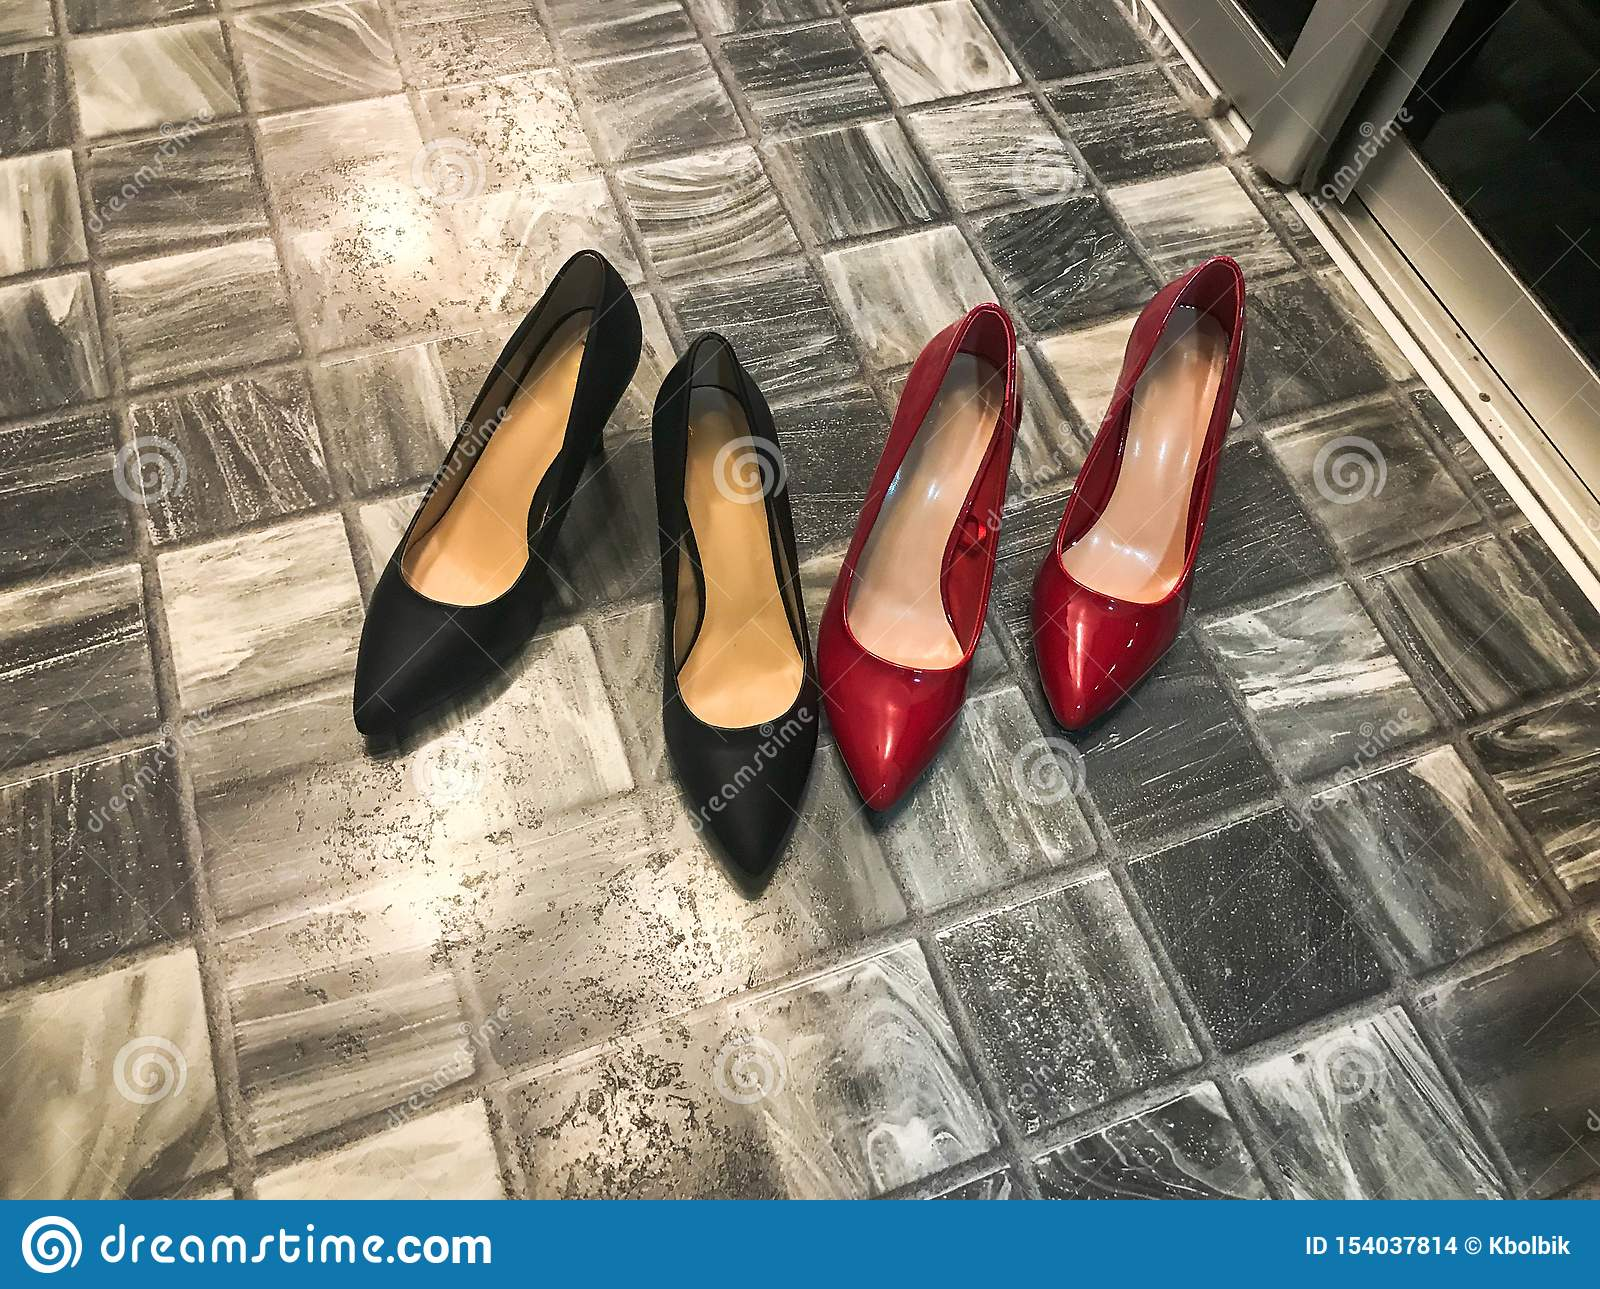 Black and red women`s beautiful elegant classic fashionable glamorous leather high-heeled shoes, stiletto heels against a stone